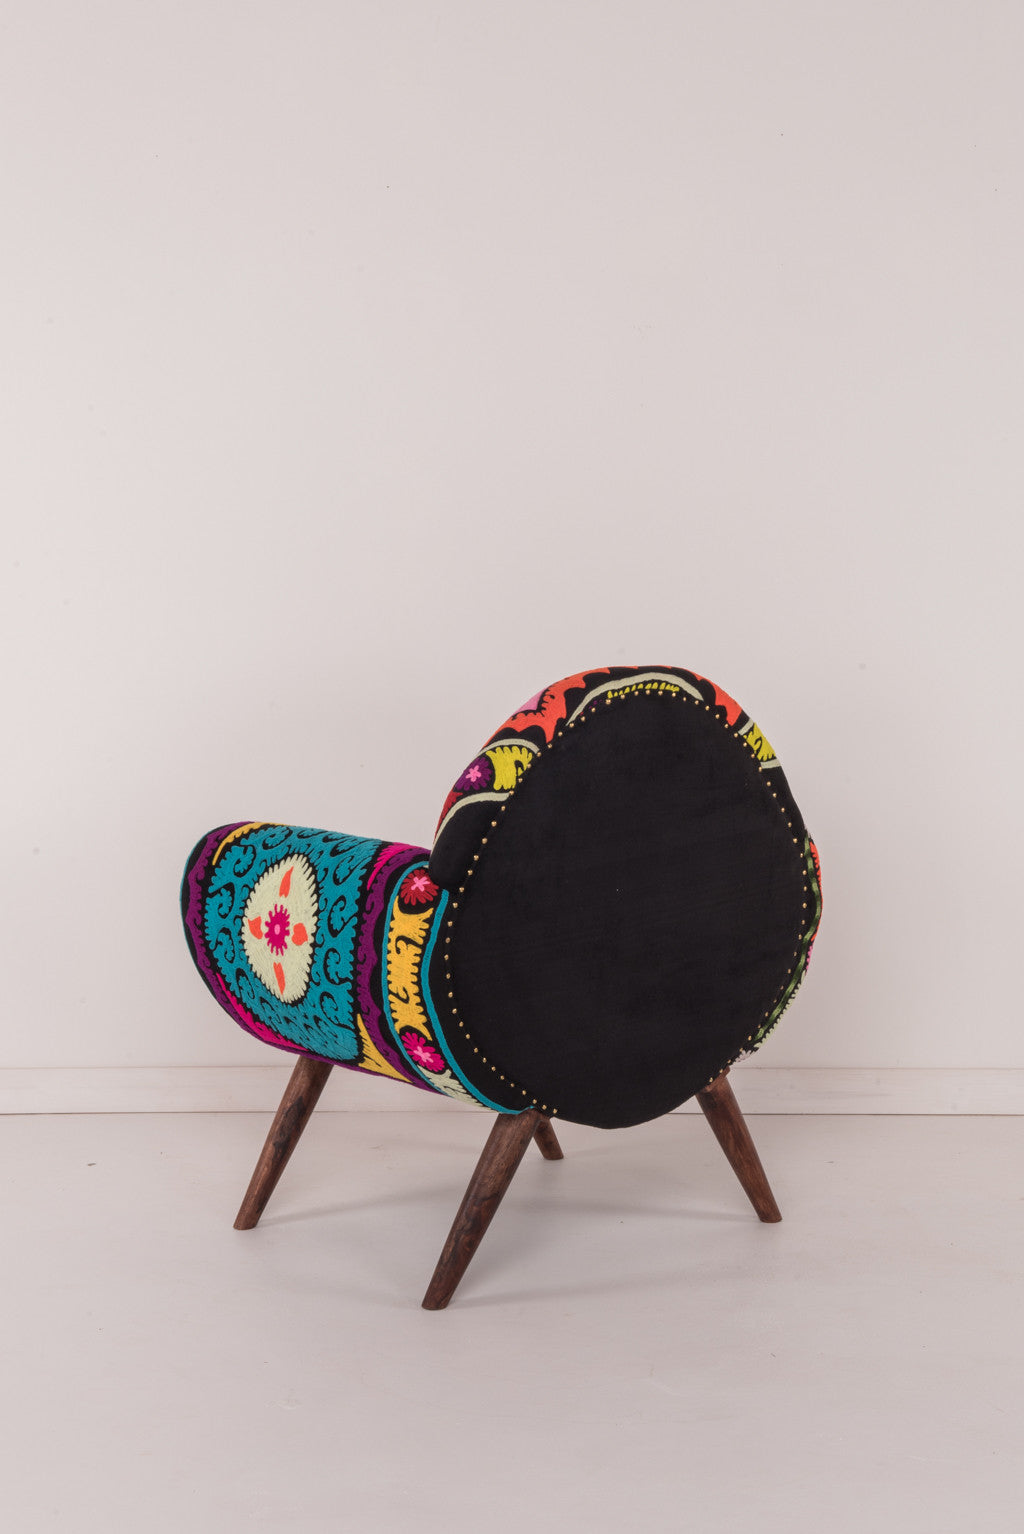 ... Neon Aztec Embroidered Nest Chair ... & Neon Aztec Embroidered Nest Chair u2013 Ian Snow Ltd